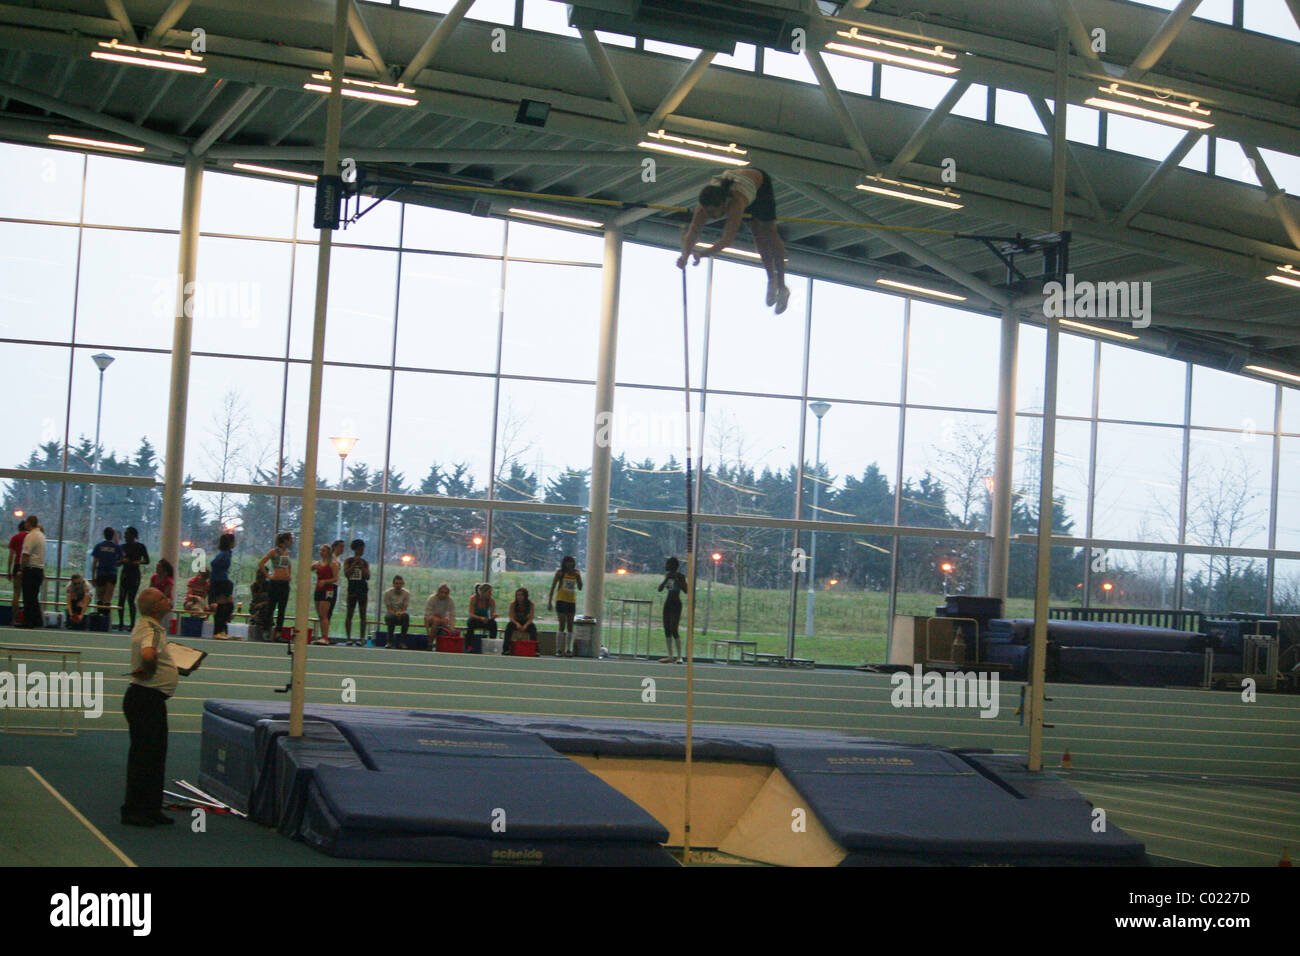 Athlete over the High Jump Bars at Lee Valley  Athletics Track, in Enfield, London. - Stock Image